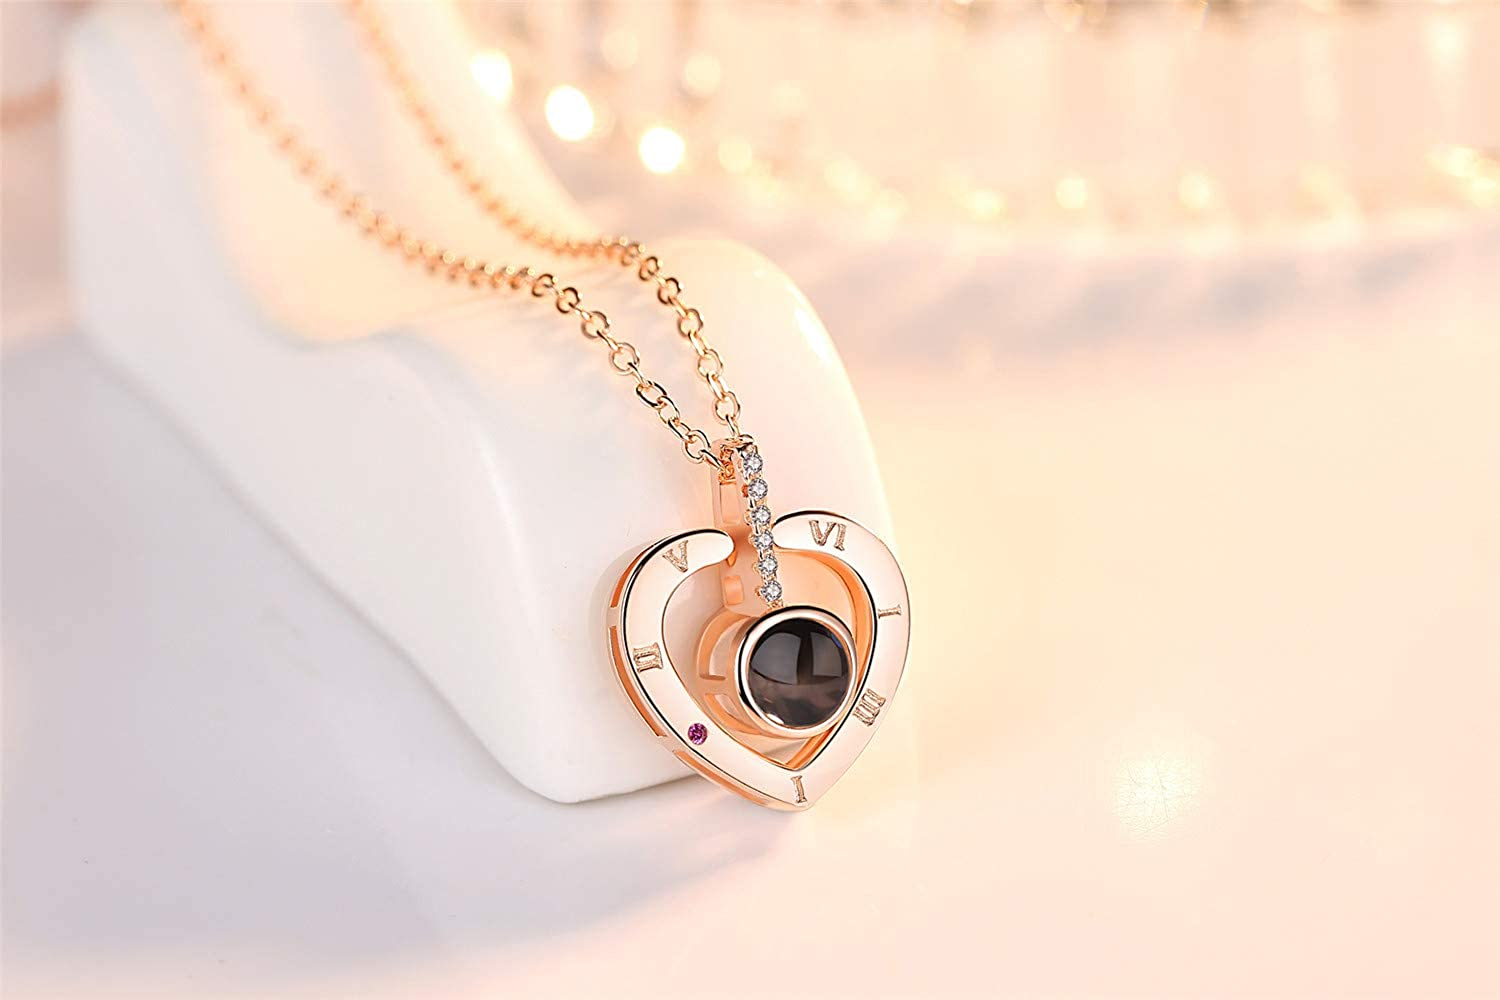 The Memory of Love Nanotechnology Necklace Women Clavicle Chain 100 Different Languages for I Love U Boyzn Copper Silver 925 Projective Necklace